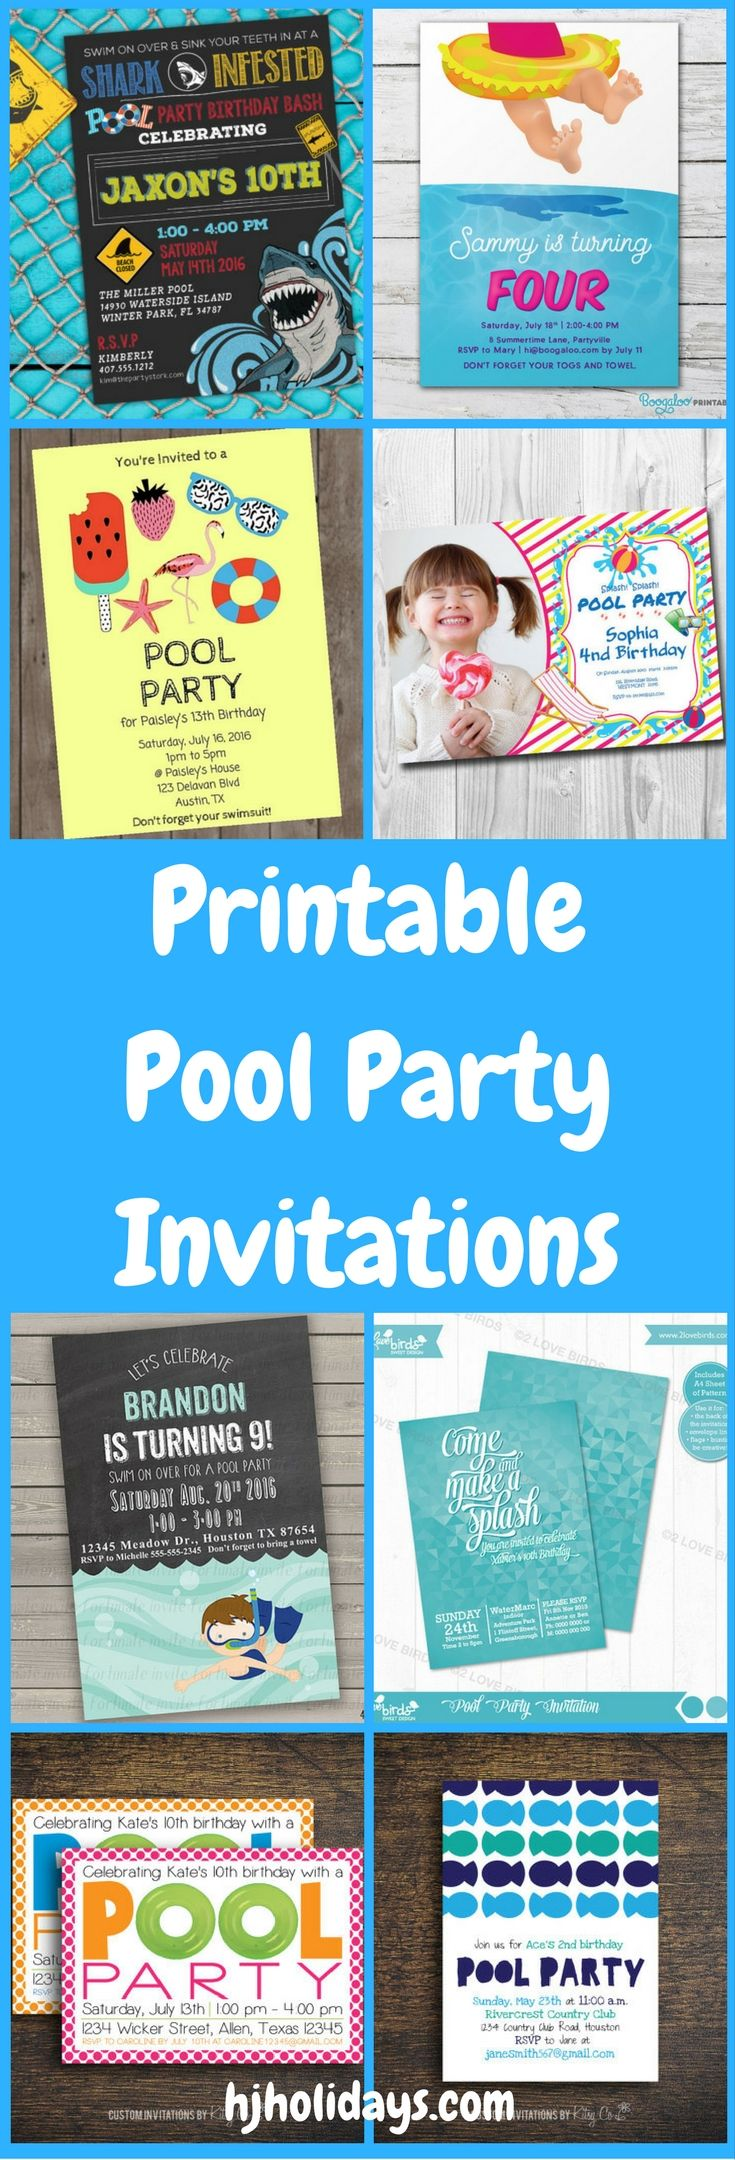 263 best Birthday Party Ideas images – Free Printable Party Invitations for Kids Birthday Parties